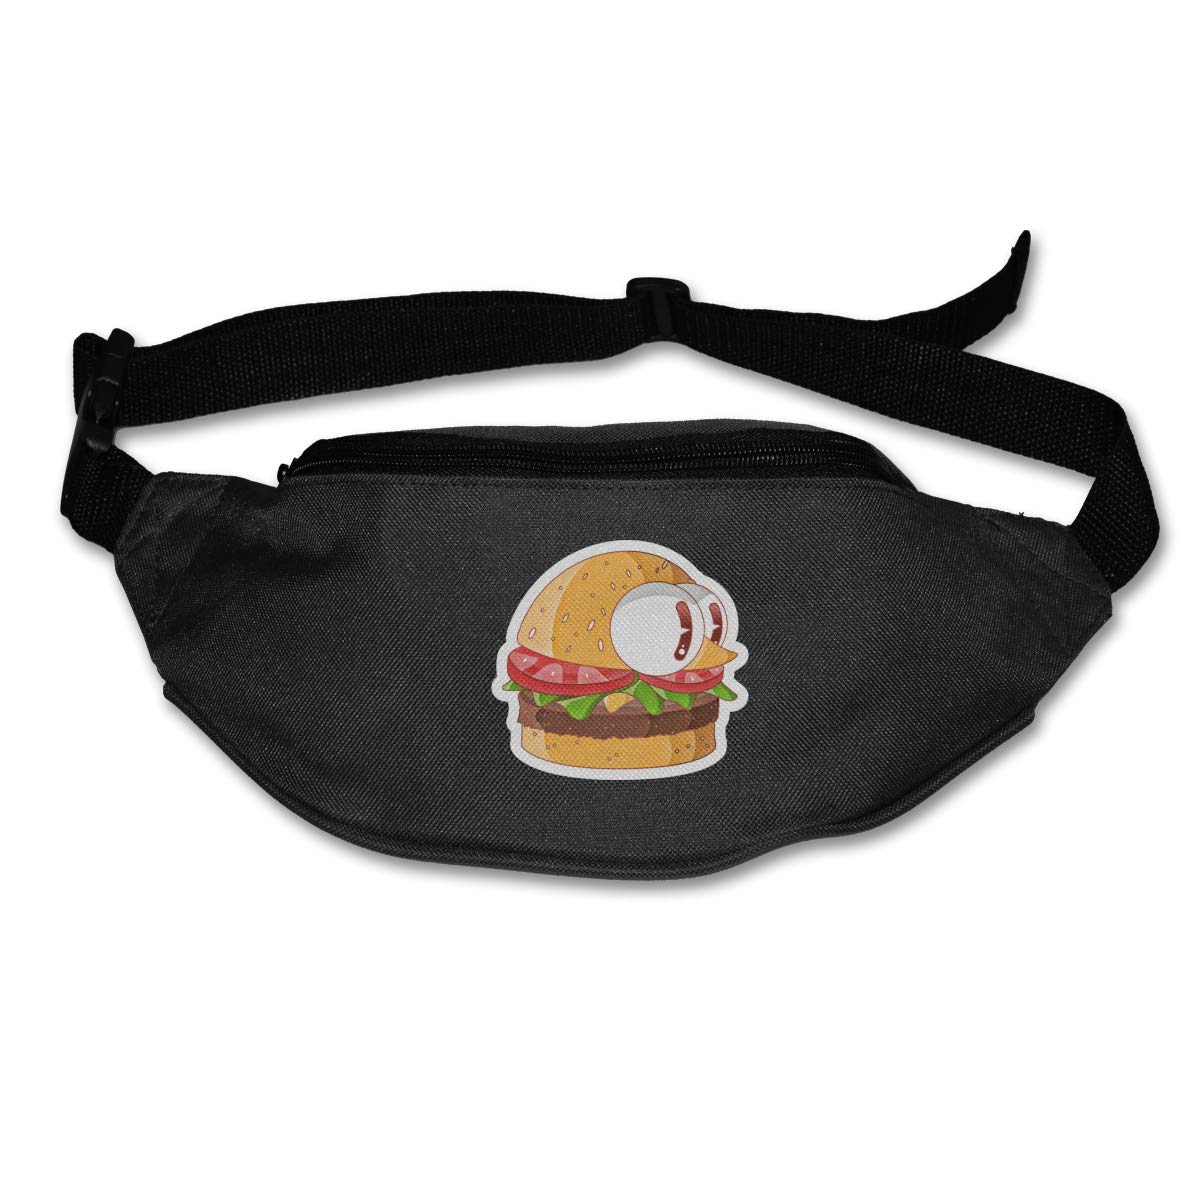 Cute Burger Sport Waist Bag Fanny Pack Adjustable For Hike